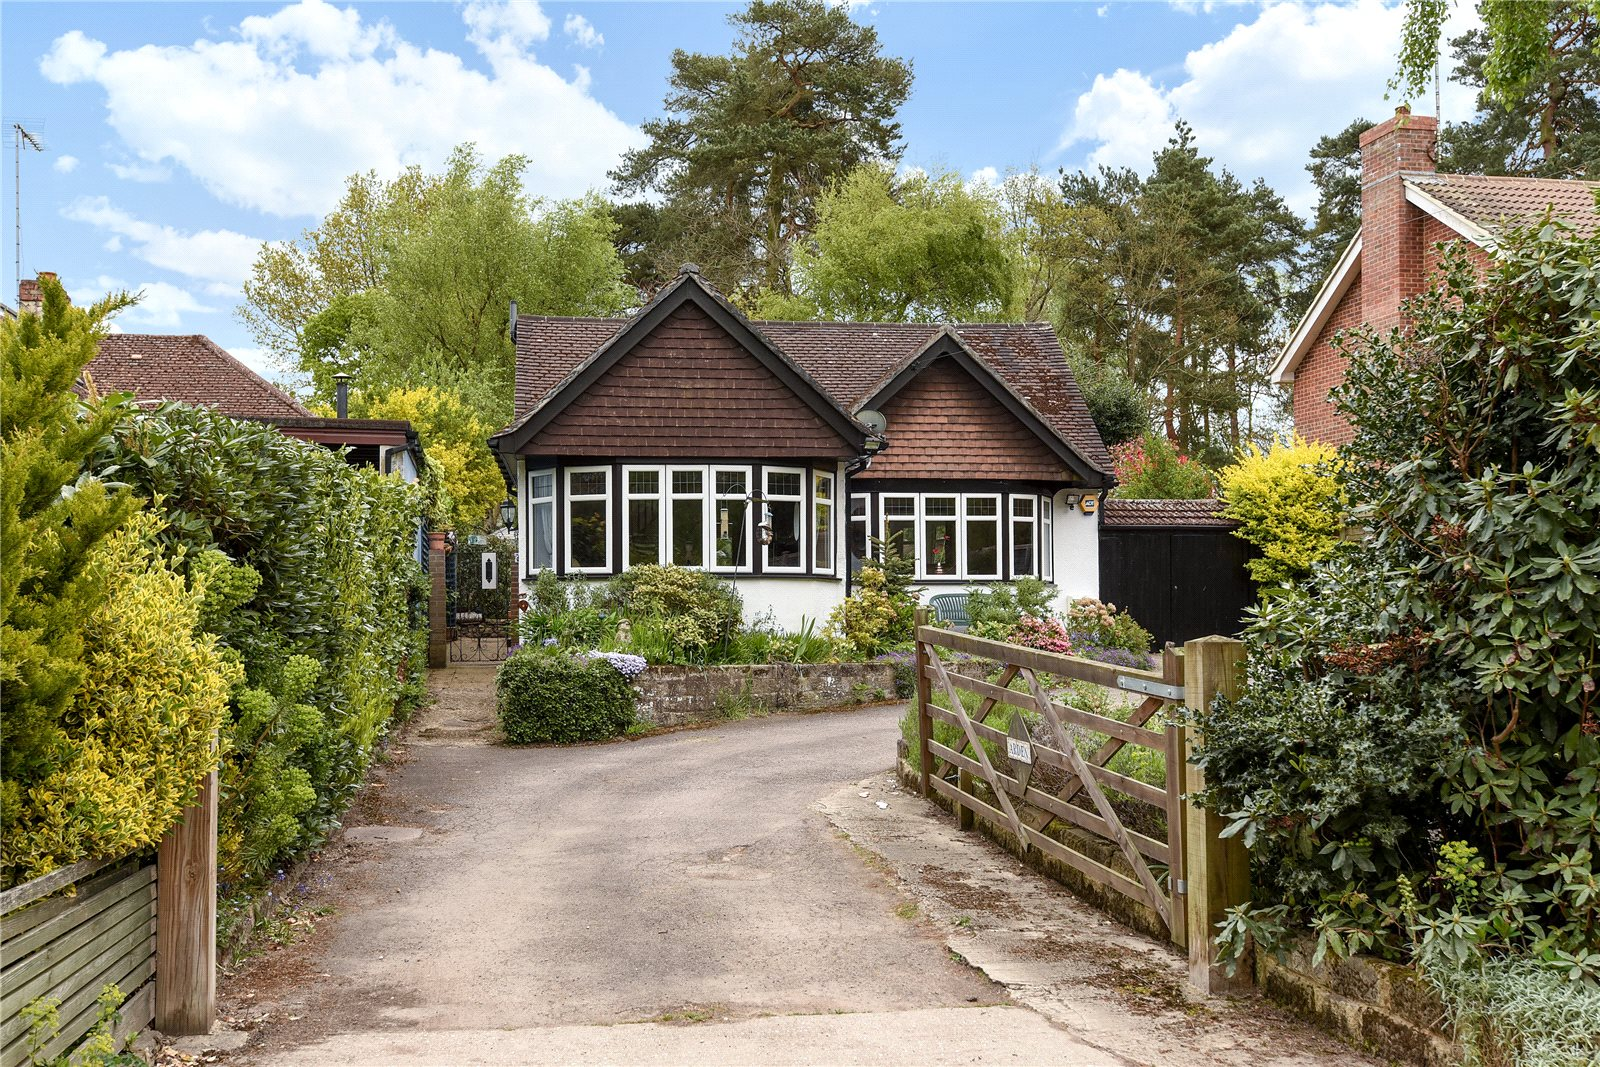 3 Bedrooms Detached Bungalow for sale in Soldiers Rise, Finchampstead, Wokingham, Berkshire, RG40